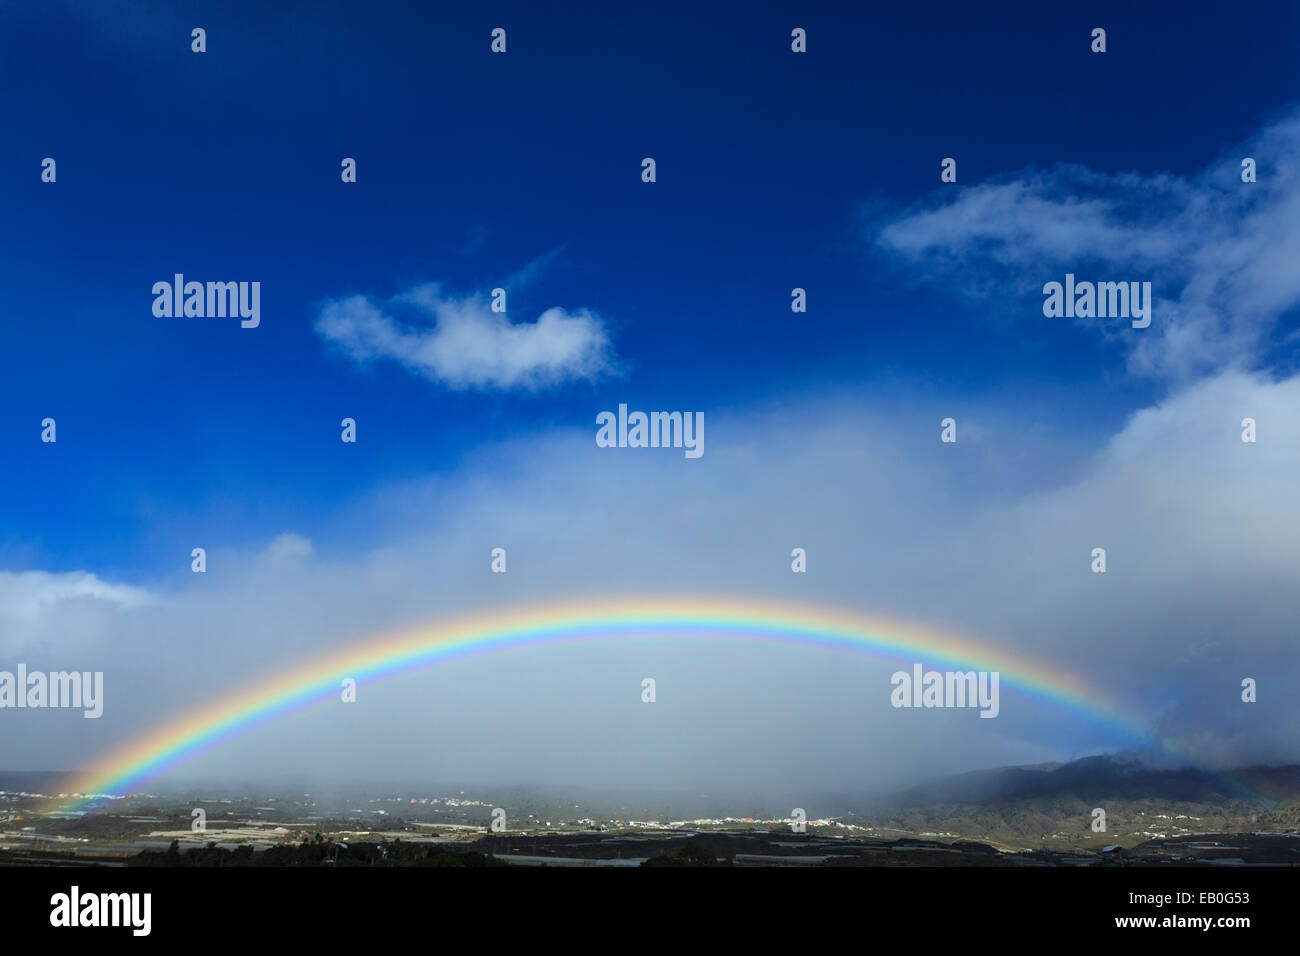 Rainbow in the foothills of mount Teide after a heavy storm, Tenerife, Canary Islands, Spain. - Stock Image